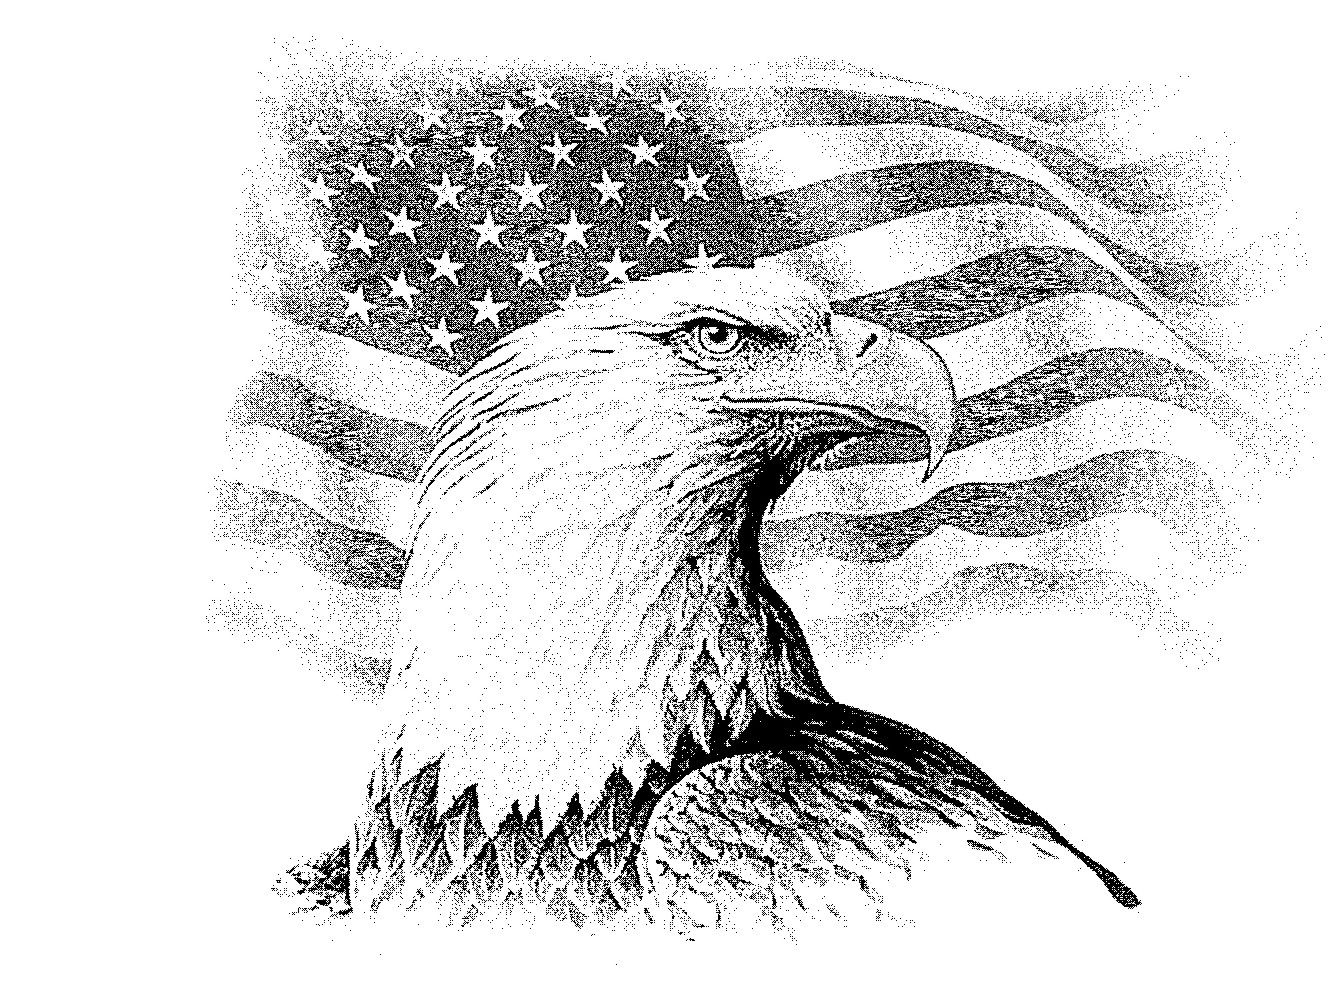 Patriotic eagle coloring pages - Eagle Drawings We Have Hundred Of Other Images From Which To Choose Please Contact